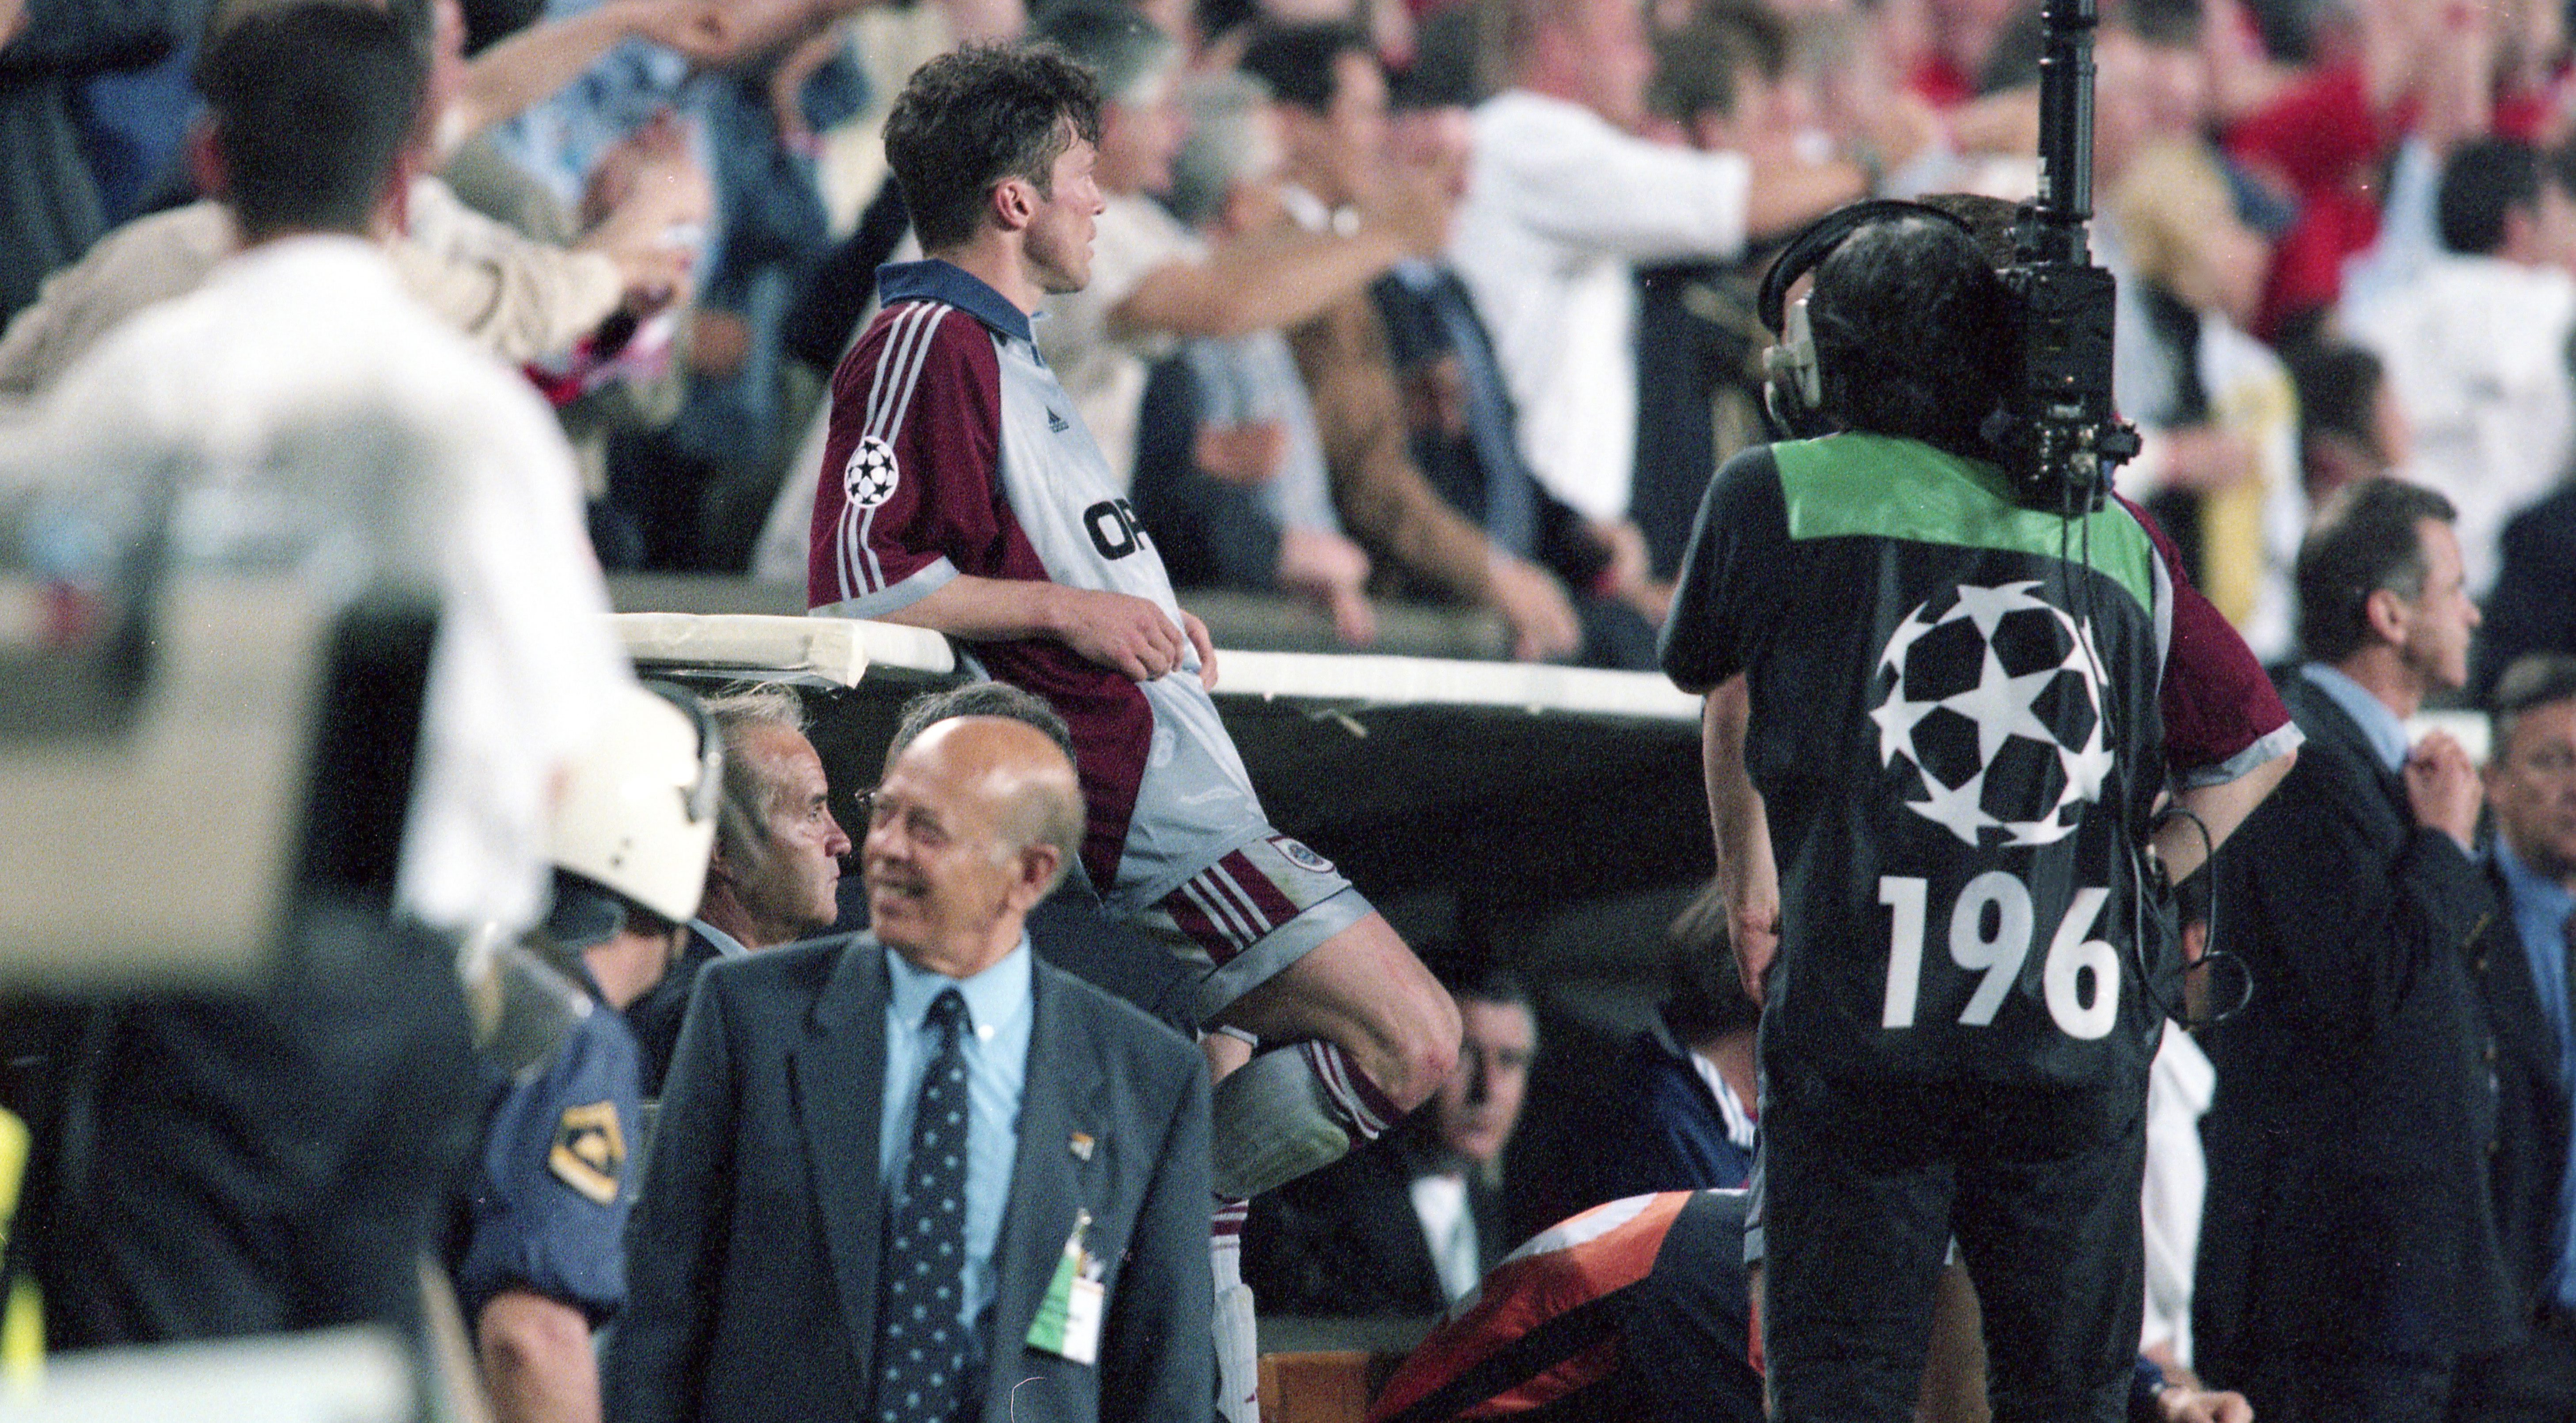 Matthäus, who'd won everything in his career apart from the Champions League, had been replaced. Image: PA Images